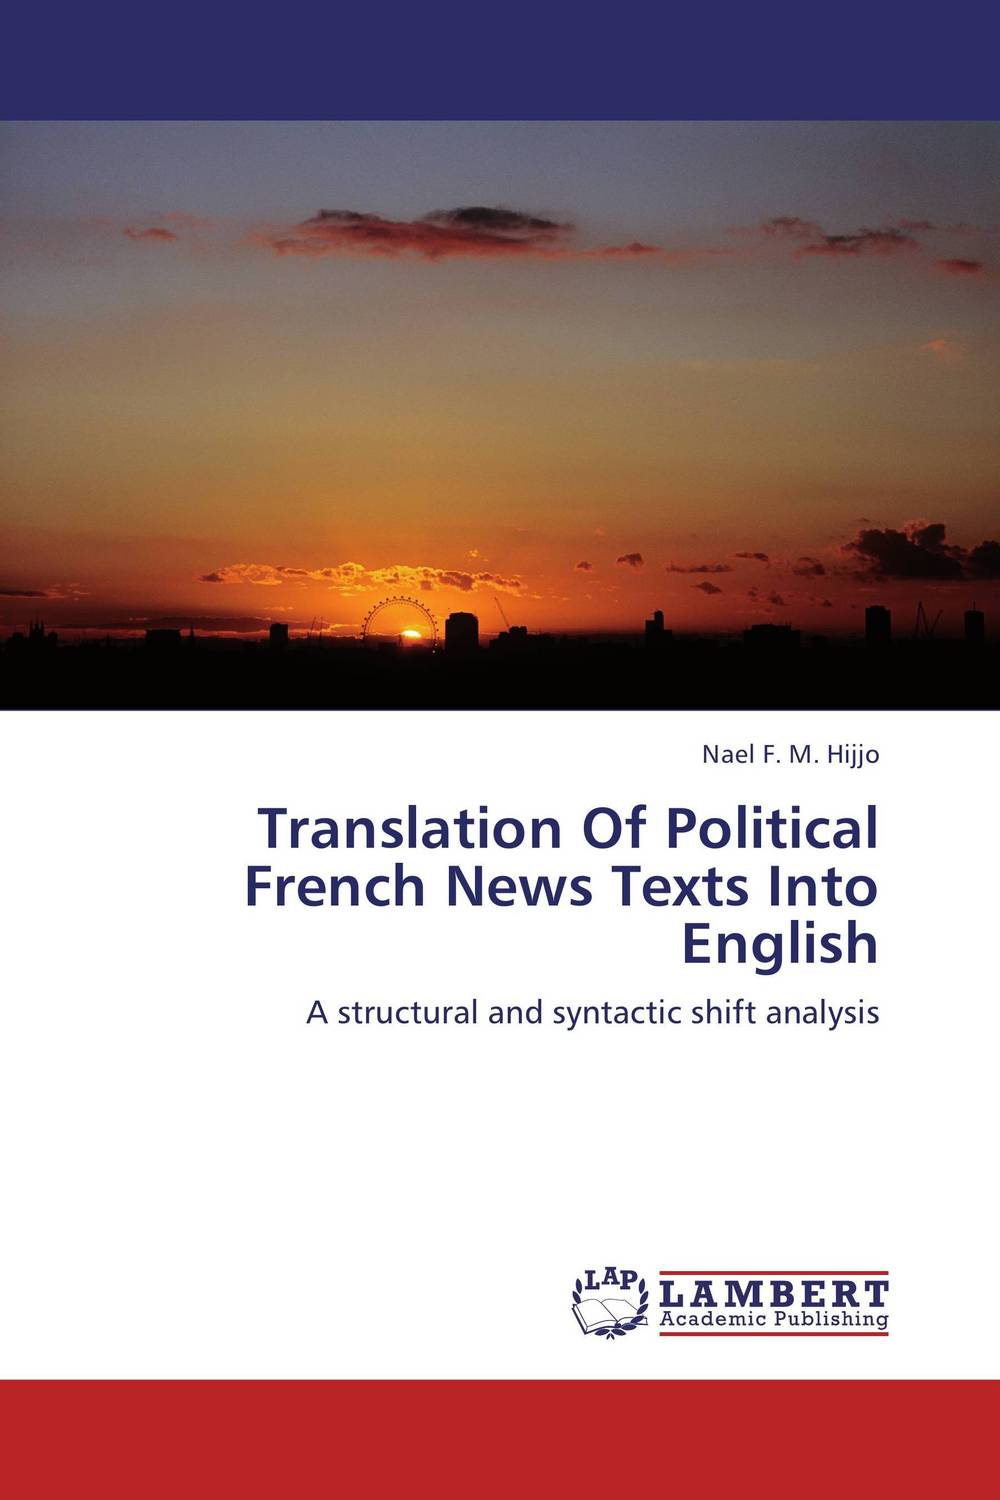 Translation Of Political French News Texts Into English the translation of figurative language